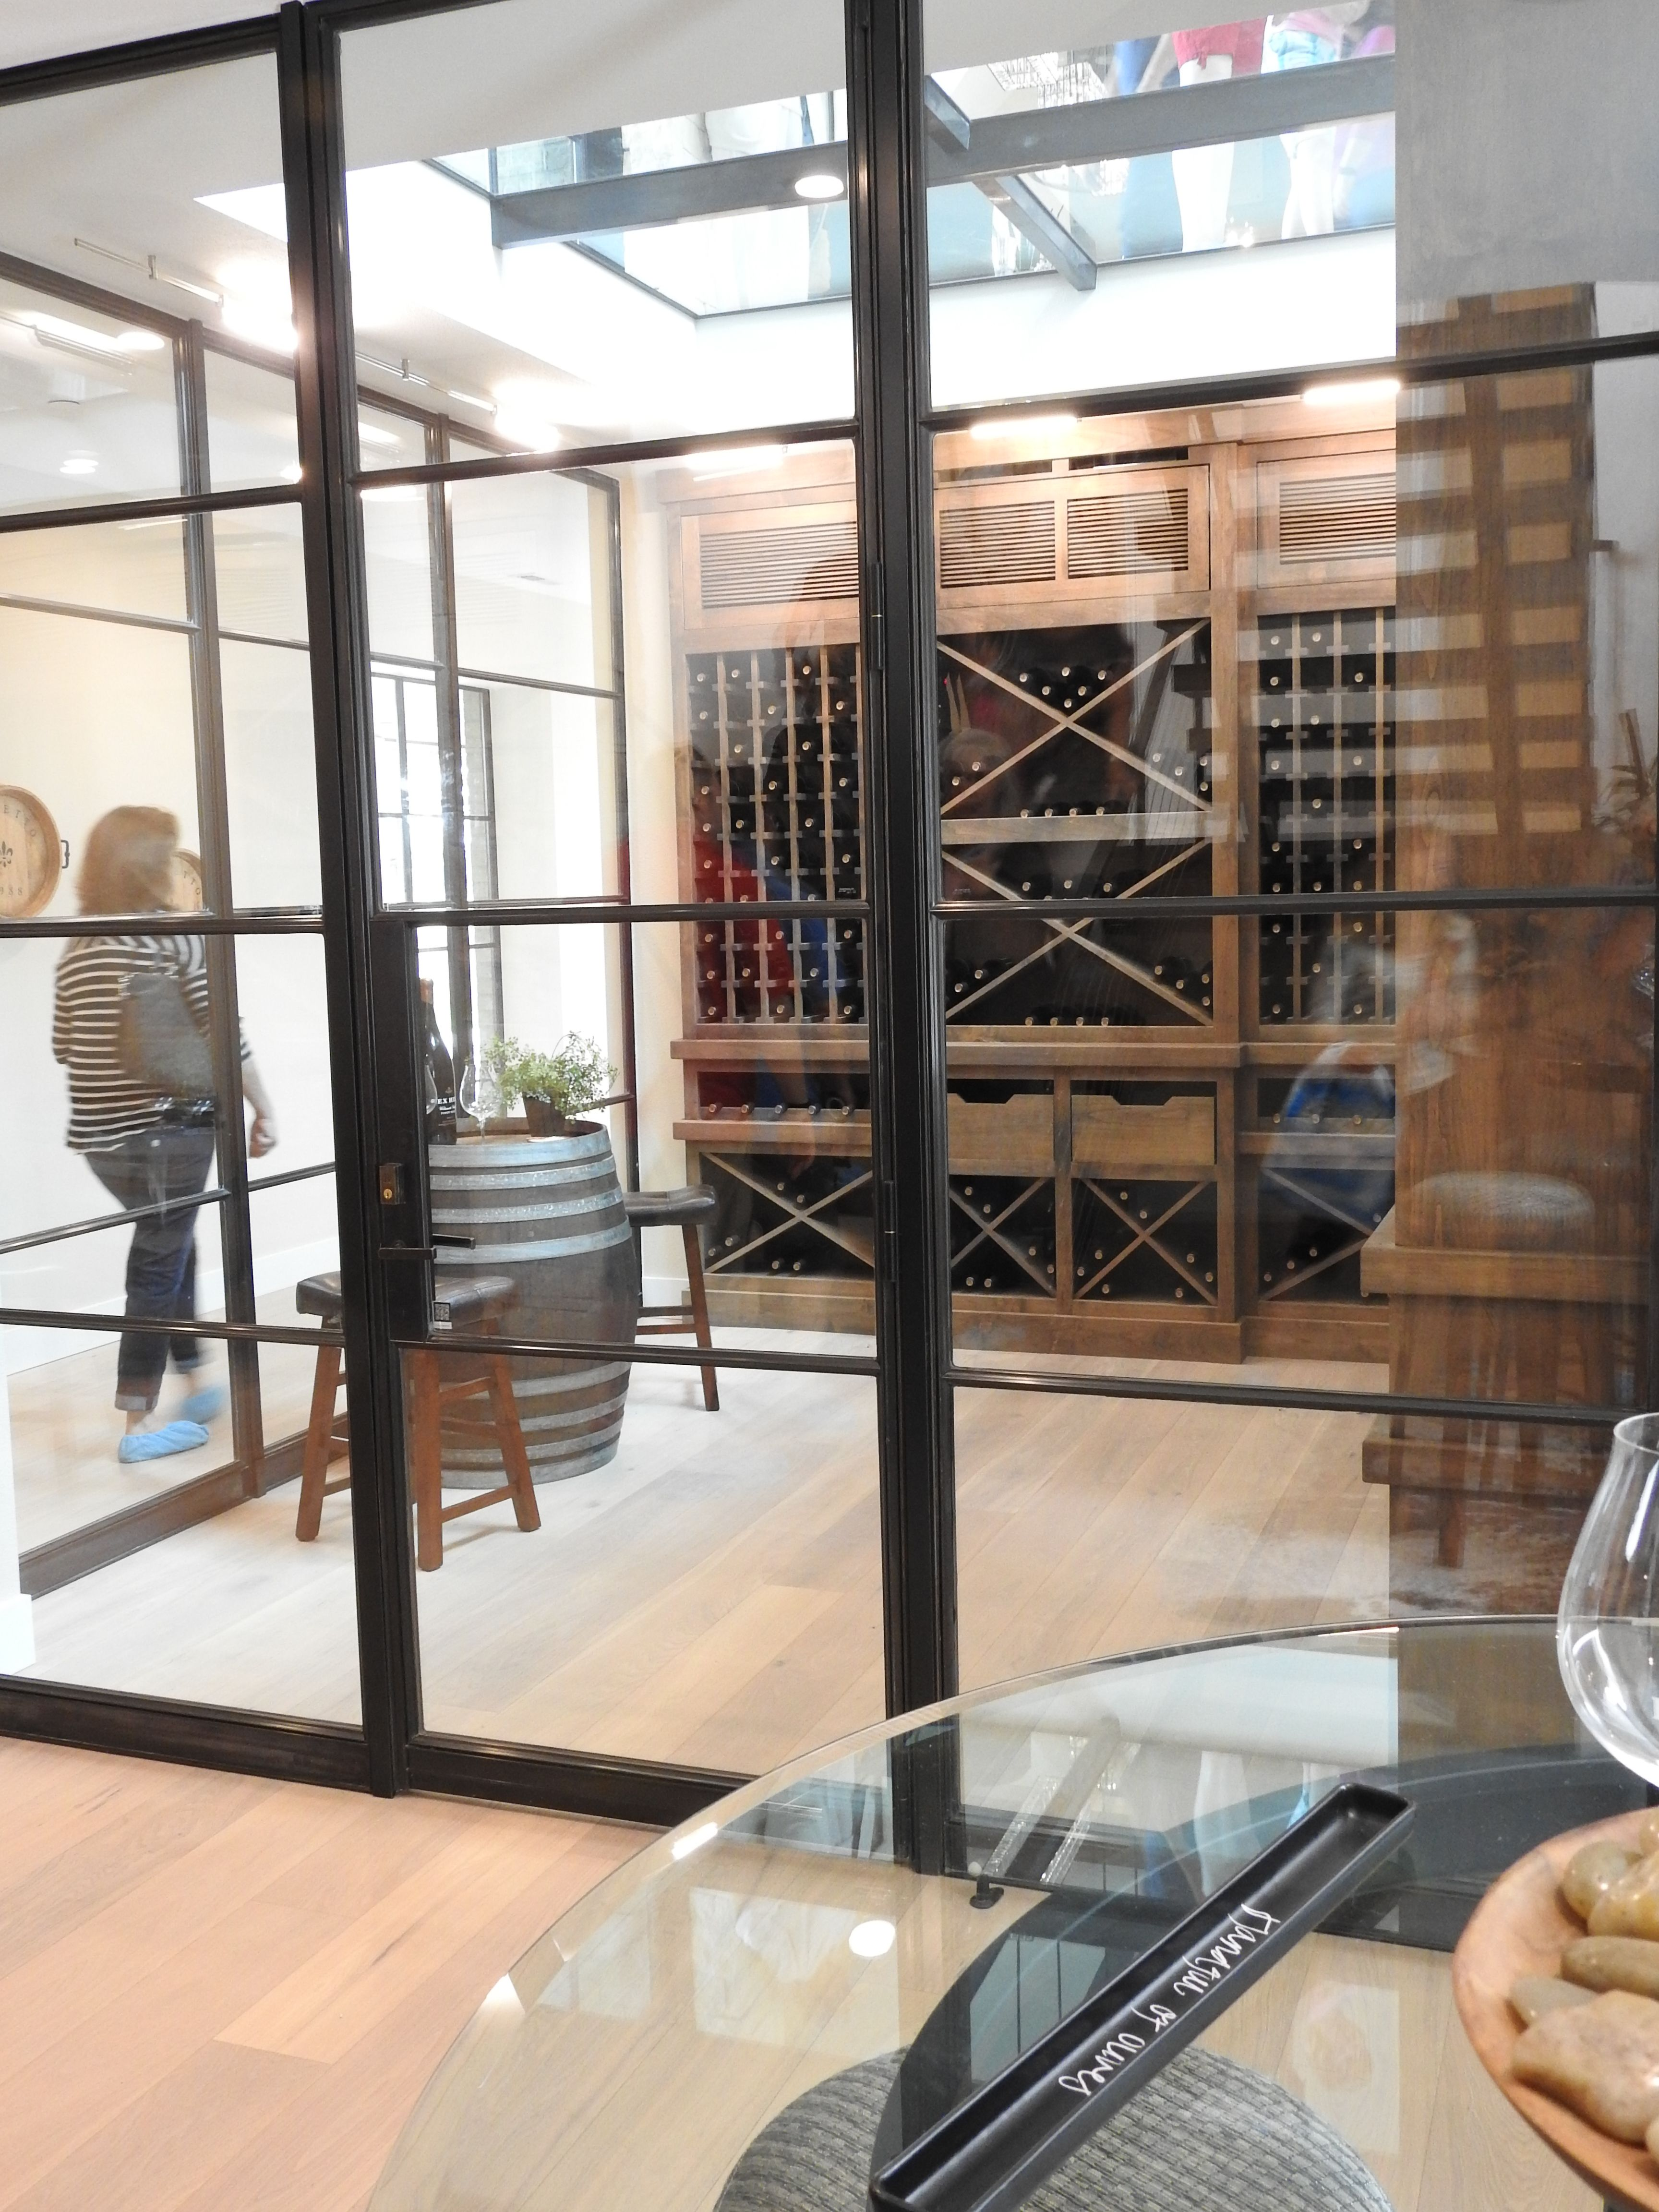 Glass Wine Cellar With Glass Ceiling With View To Floor Above Why Glass Wine Cellar Glass Ceiling Wine Cellar